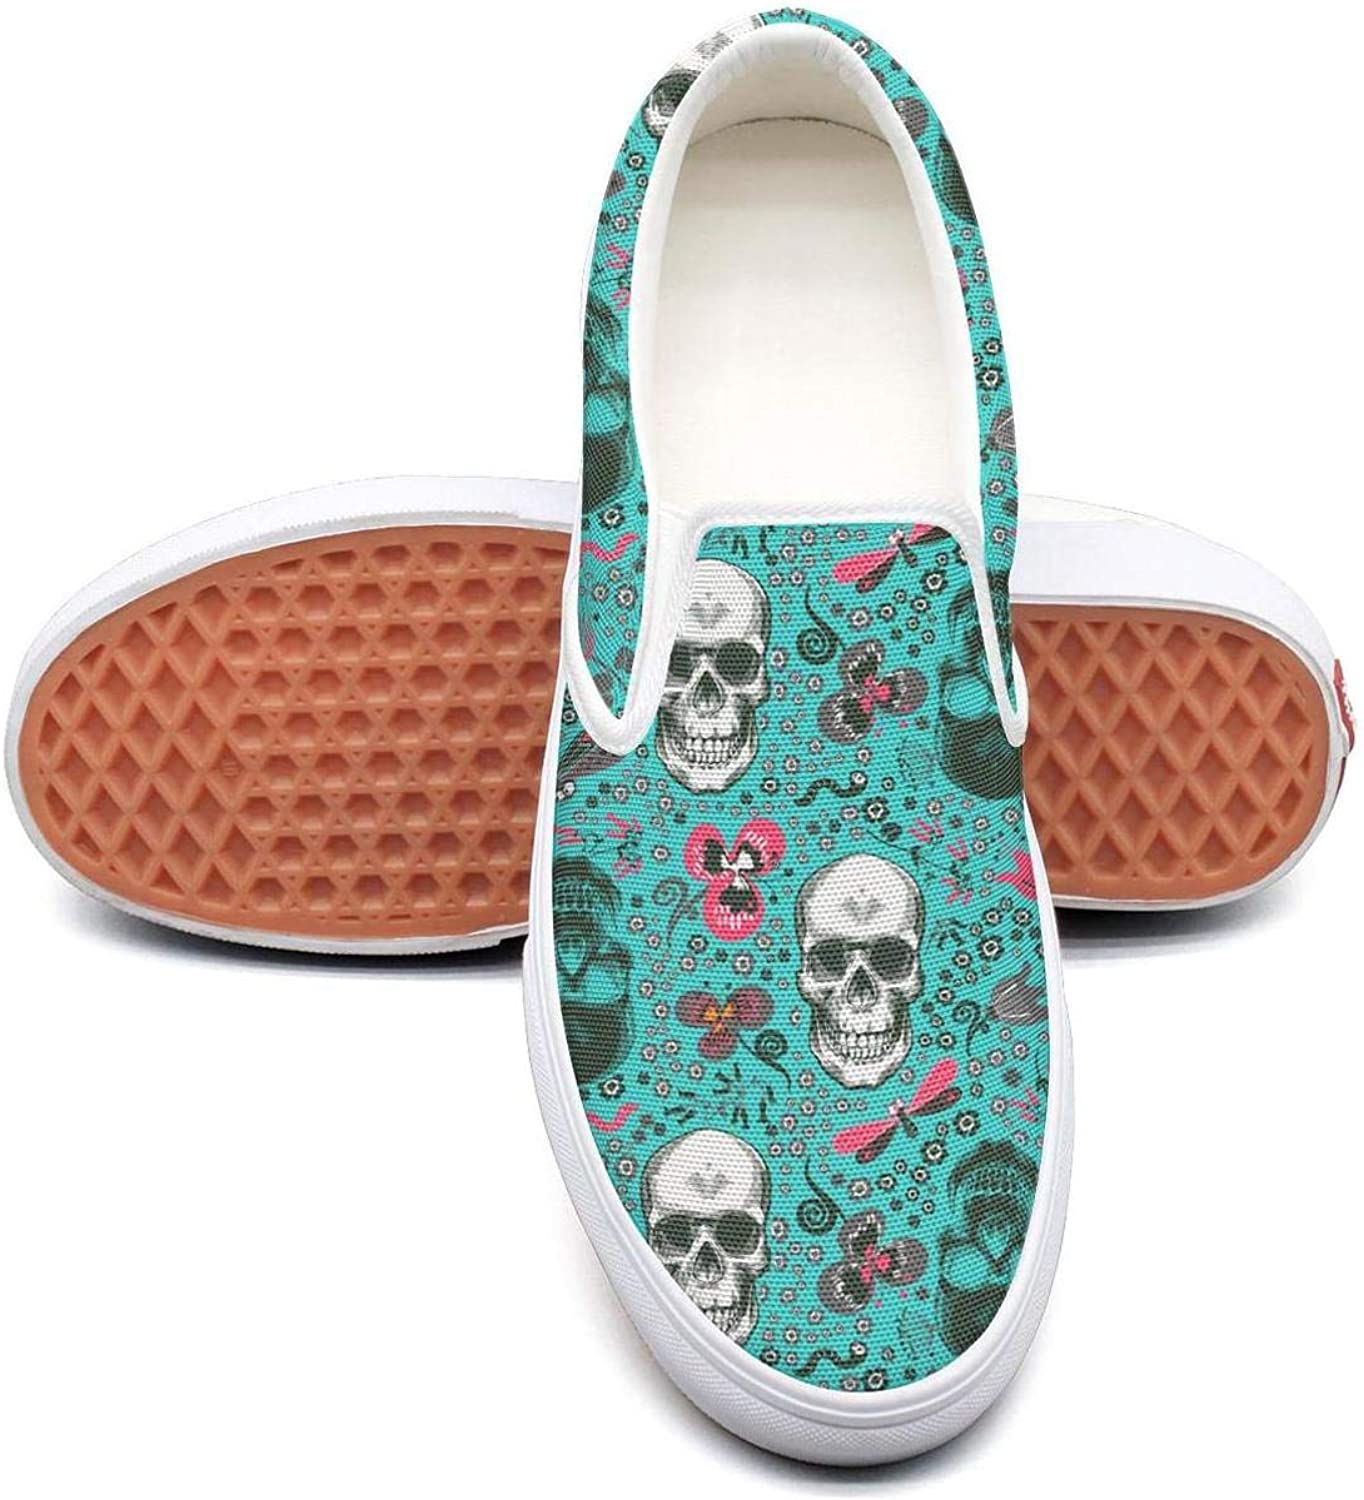 bluee Mexican Candy Art Skull Party Slip On Rubber Sole Sneakers Canvas shoes for Women Round Toe